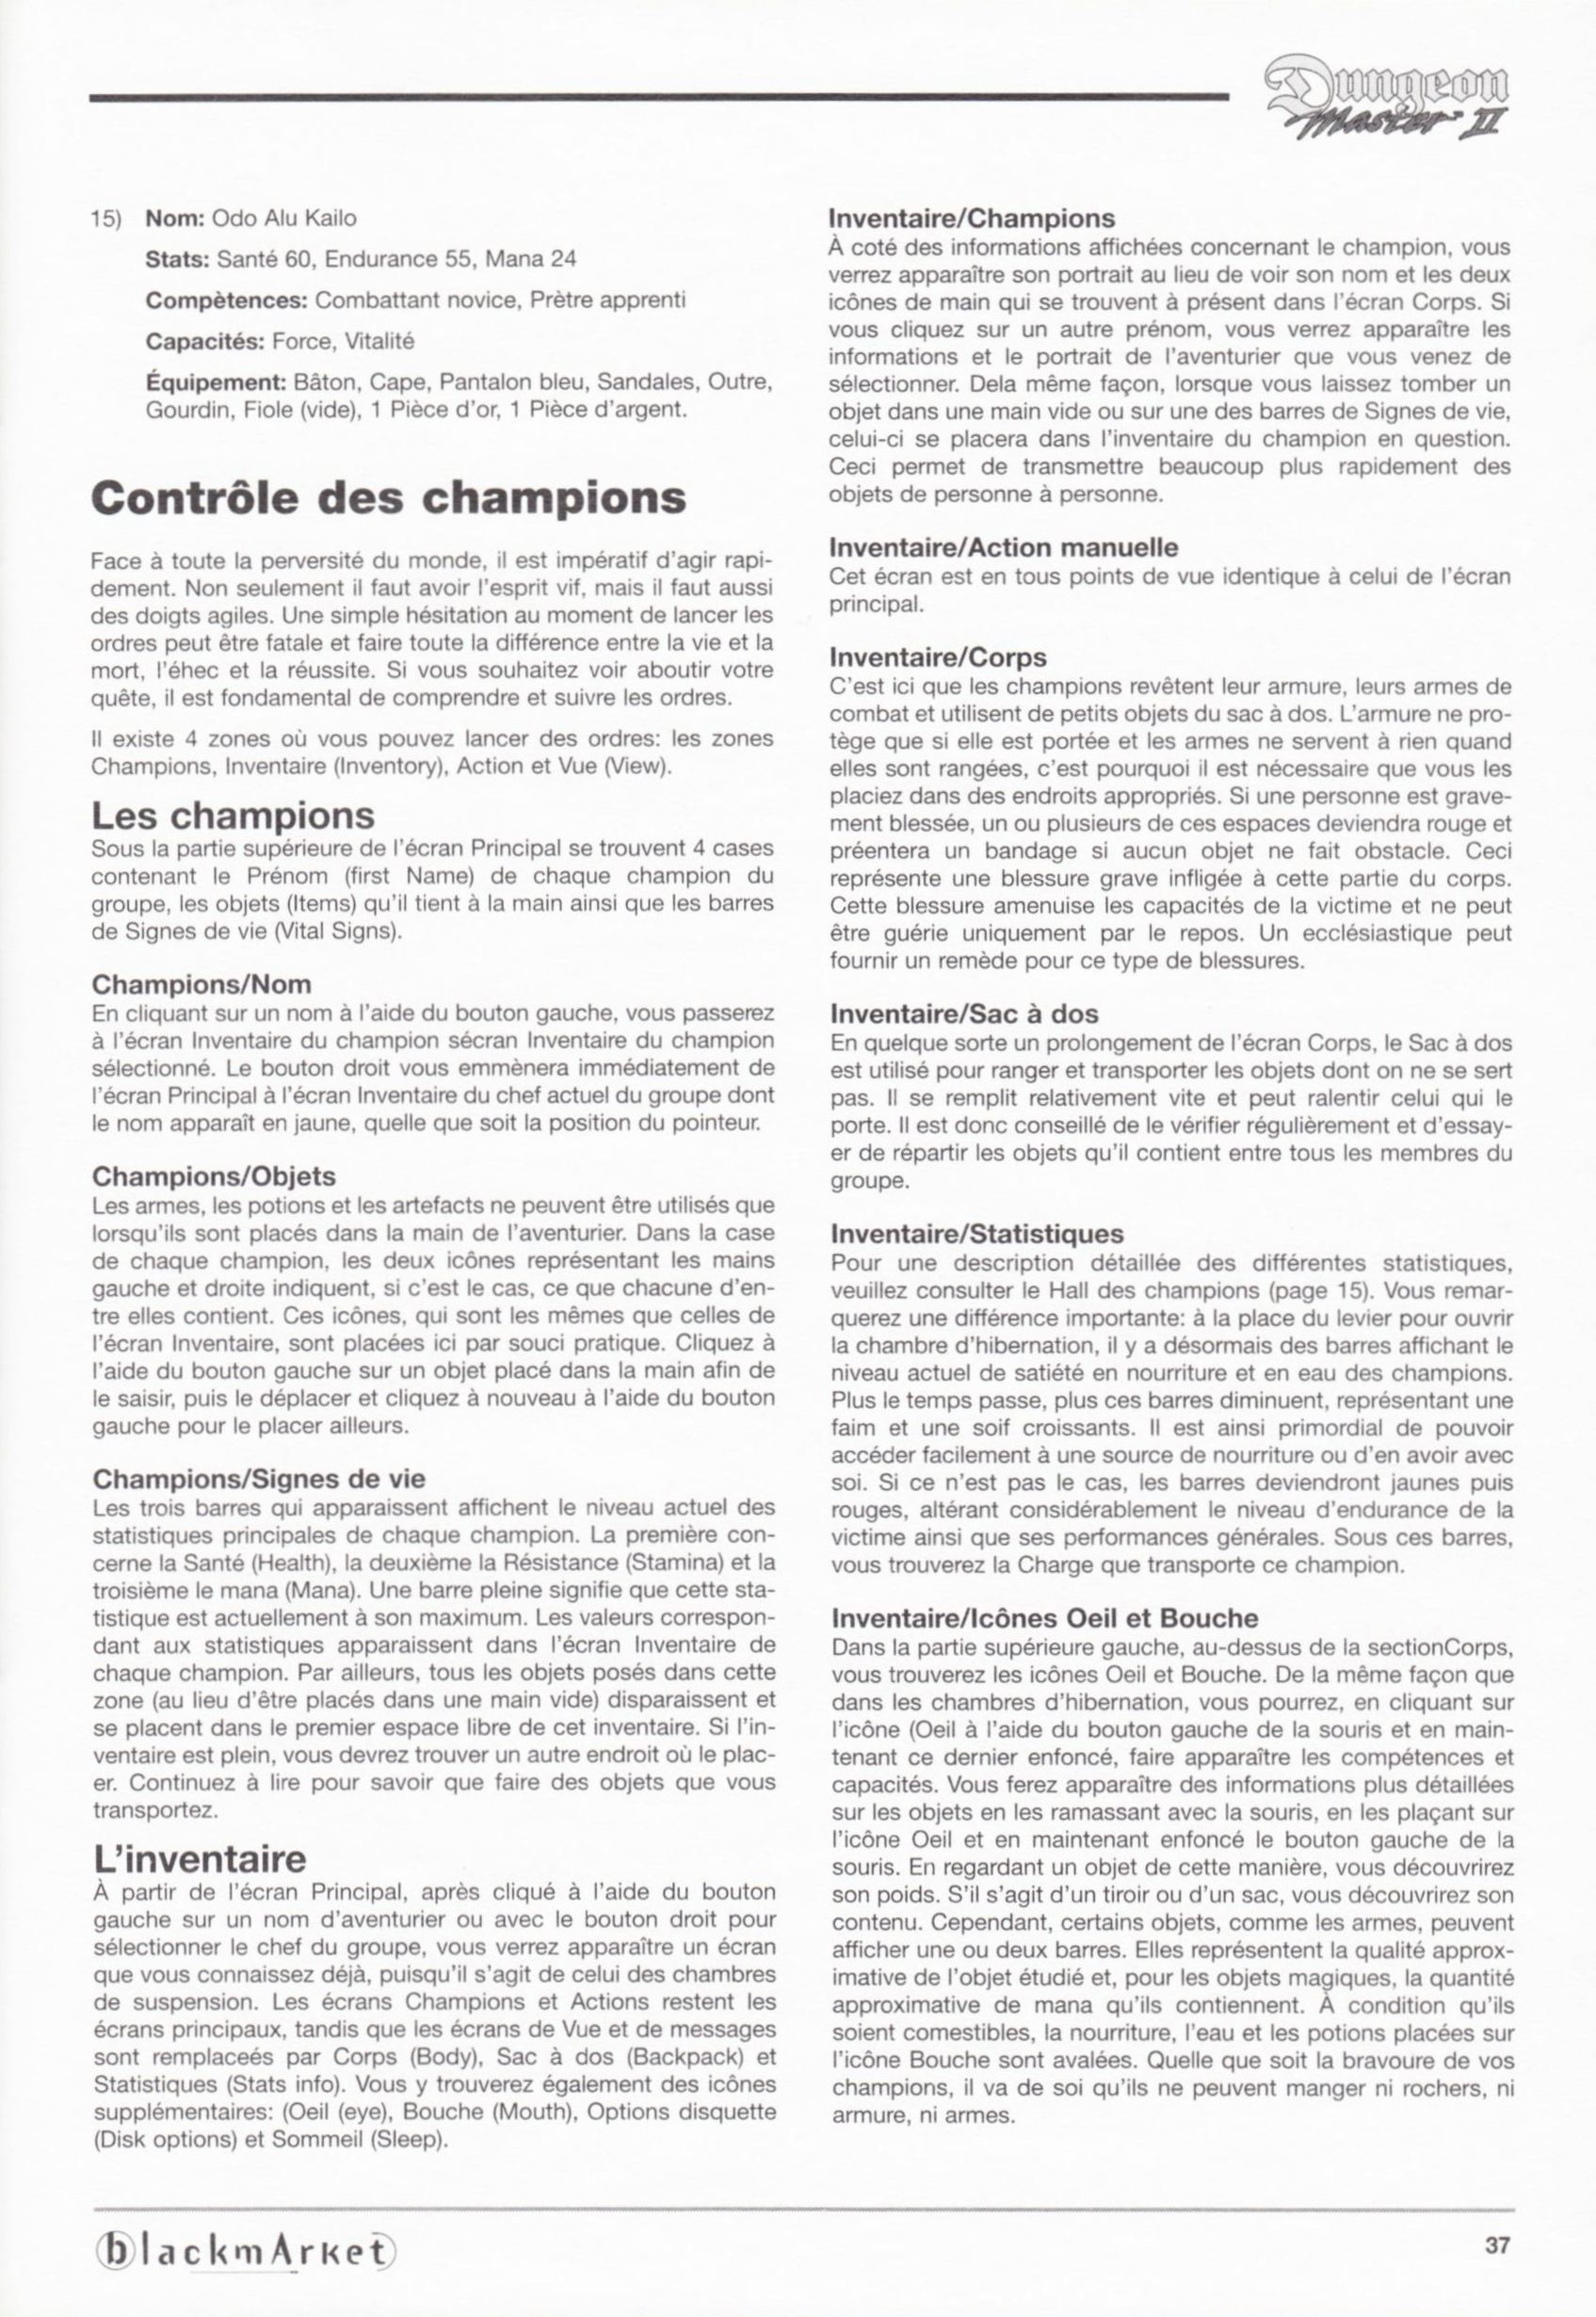 Game - Dungeon Master II - DE - PC - Blackmarket With Manual - Manual - Page 039 - Scan